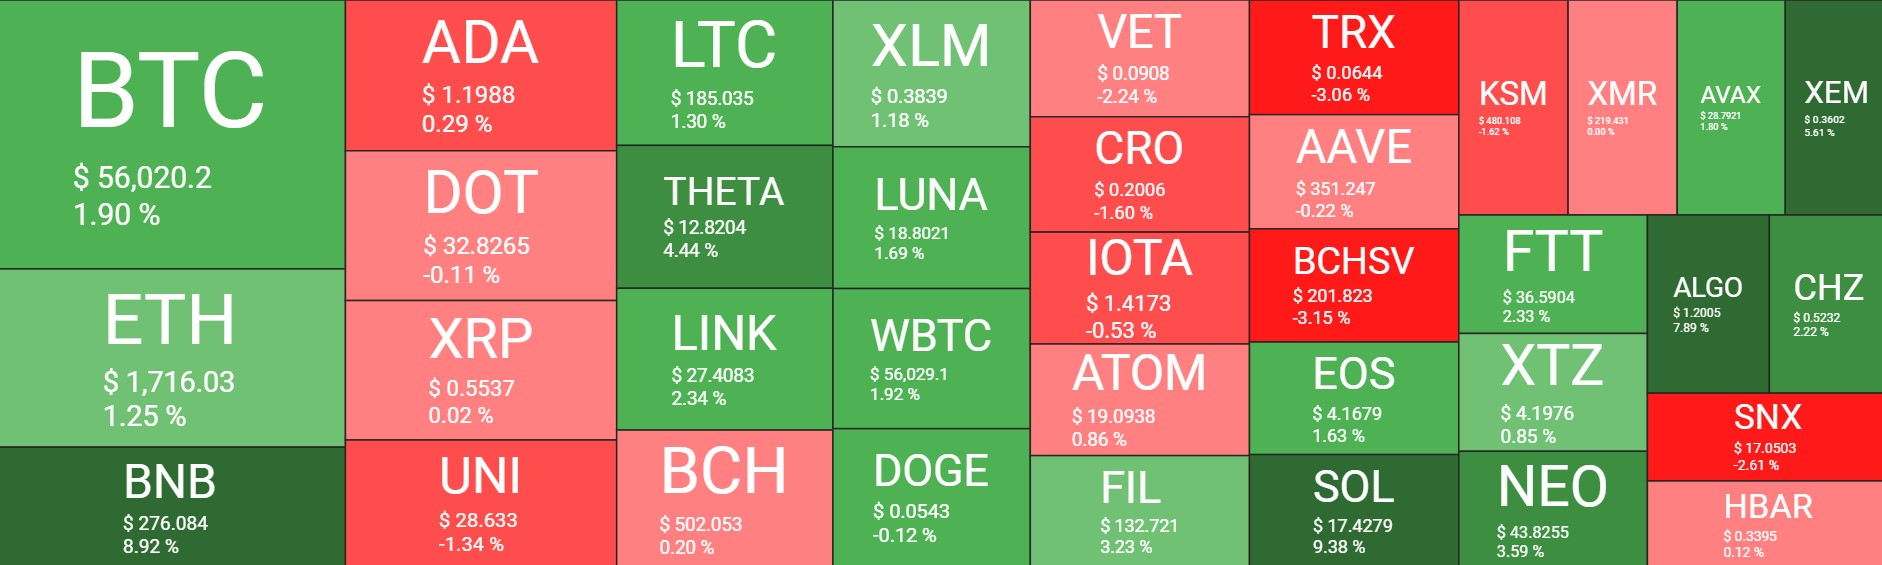 Cryptocurrency Market Overview. Source: Quantify Crypto